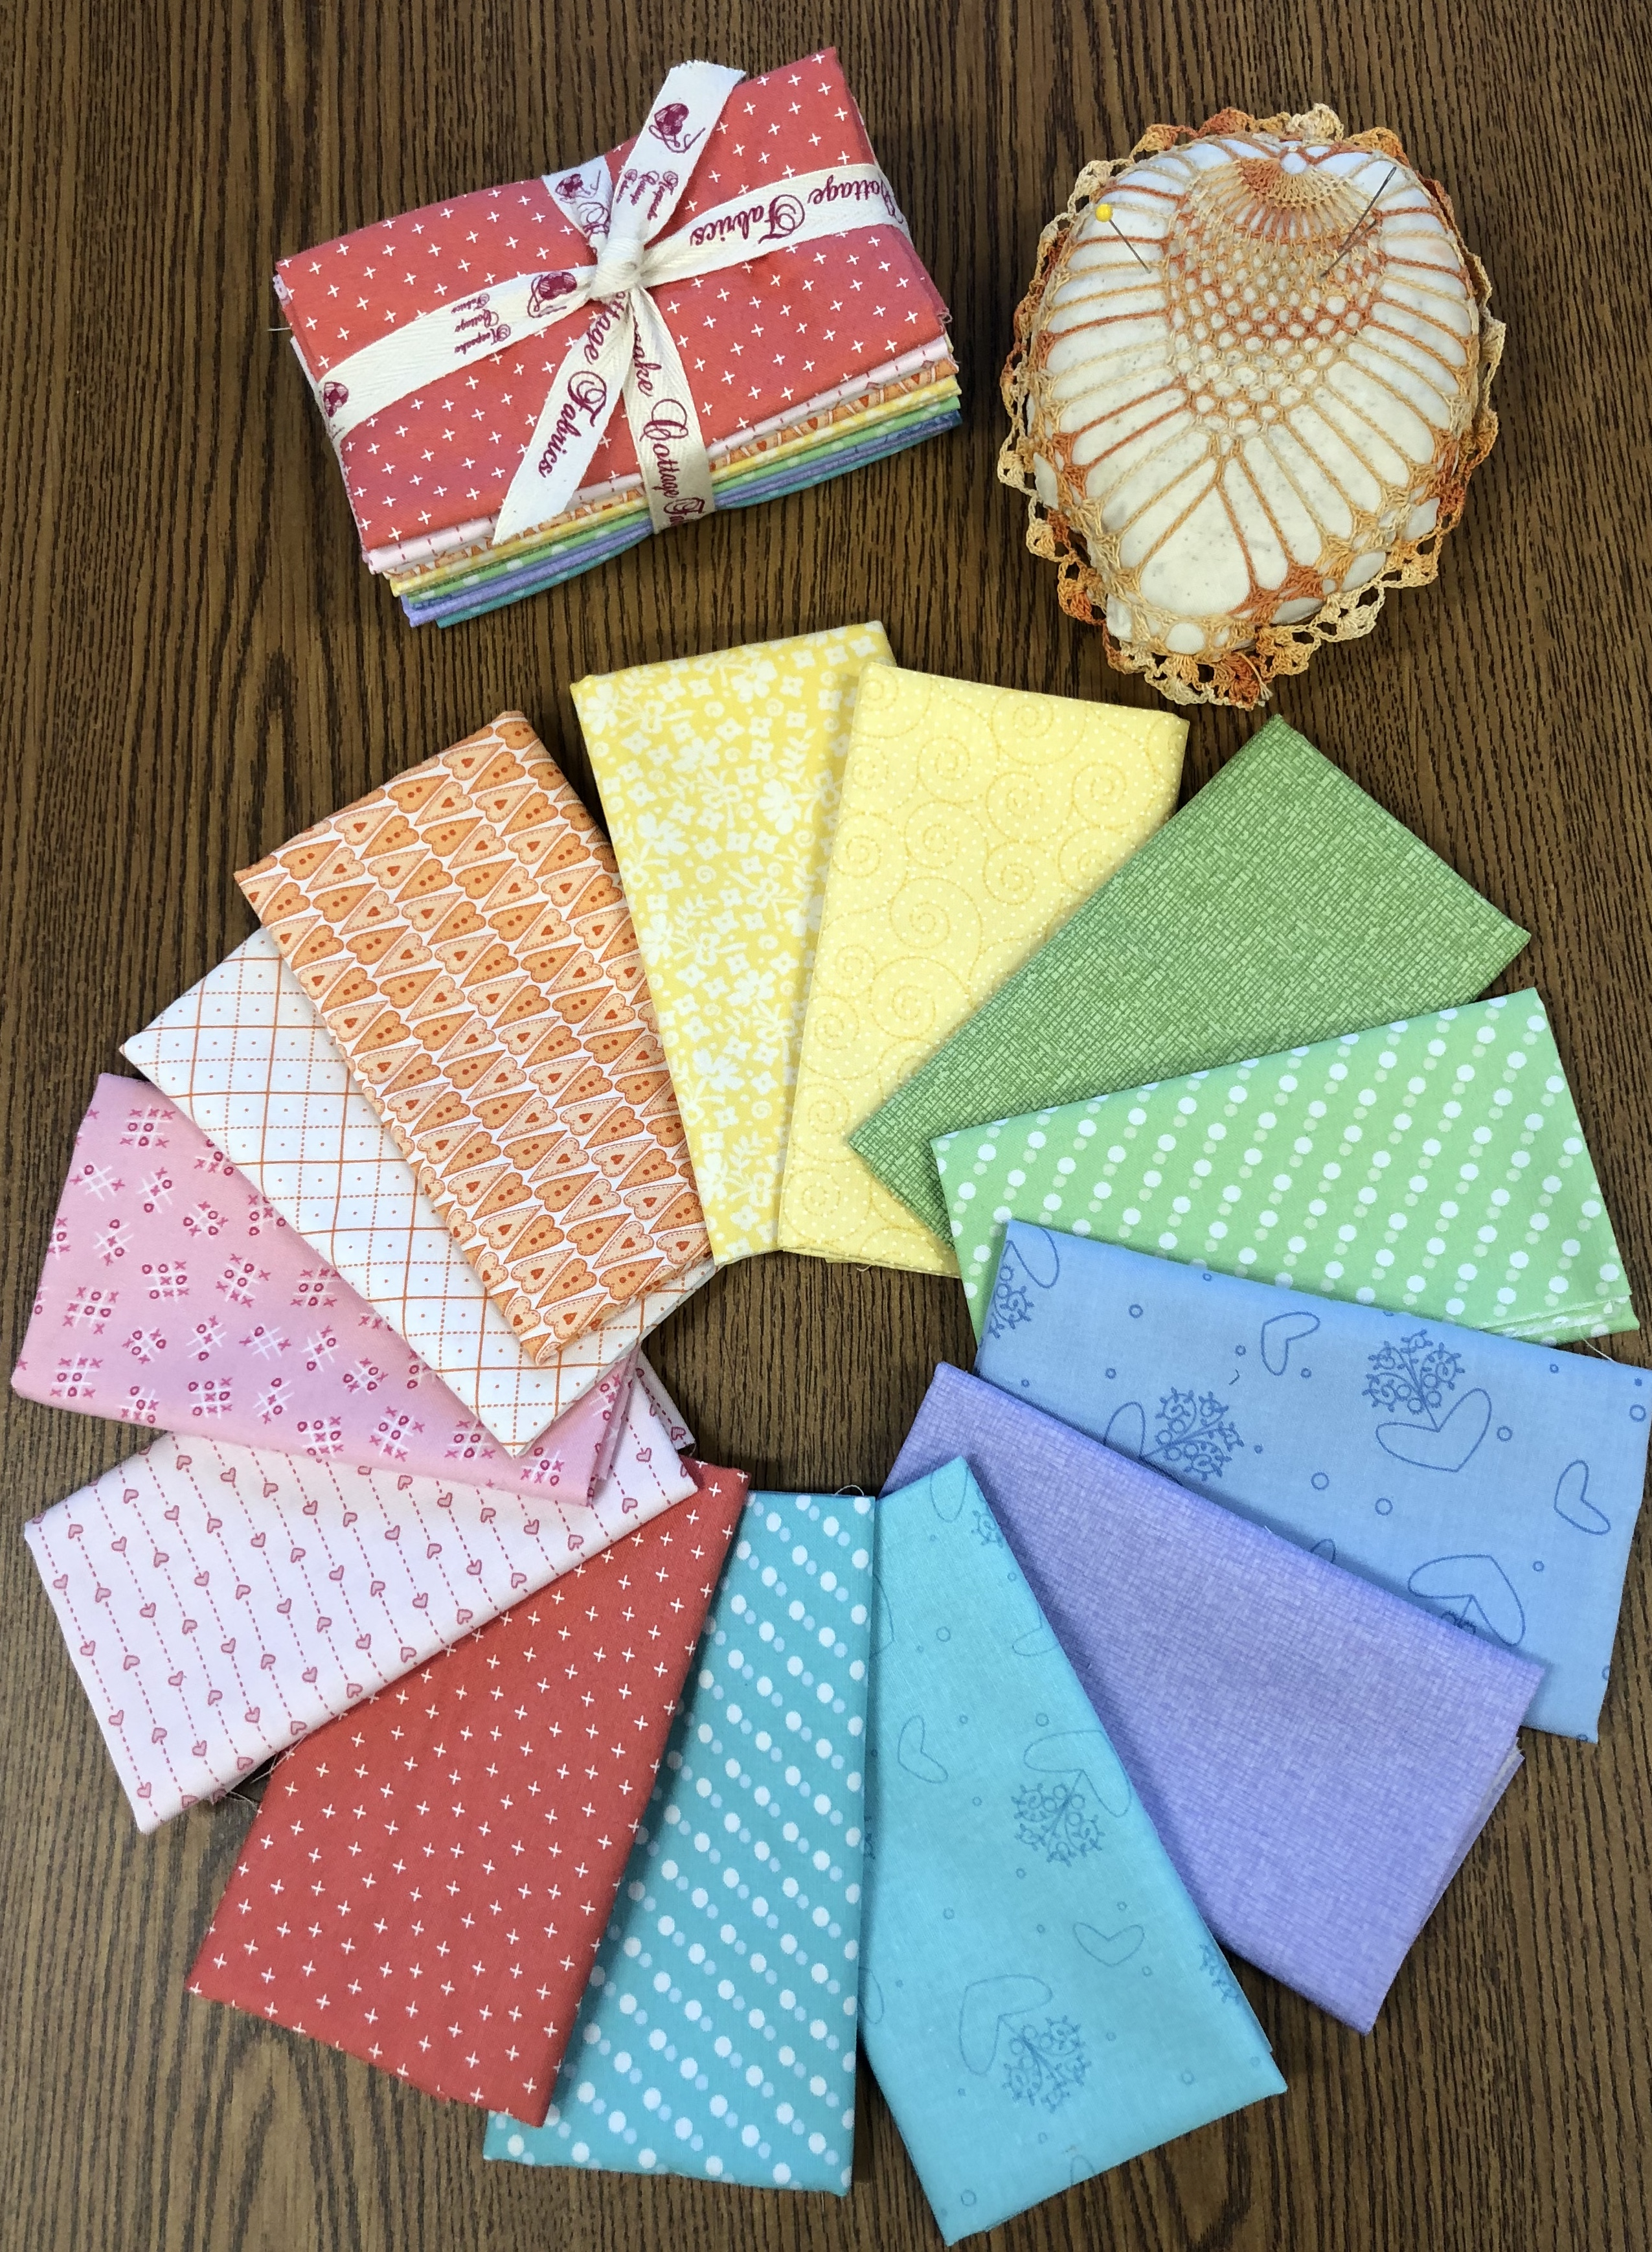 Stitch Therapy 365 - A Stitch Along with Helen Stubbings Fabric Packet